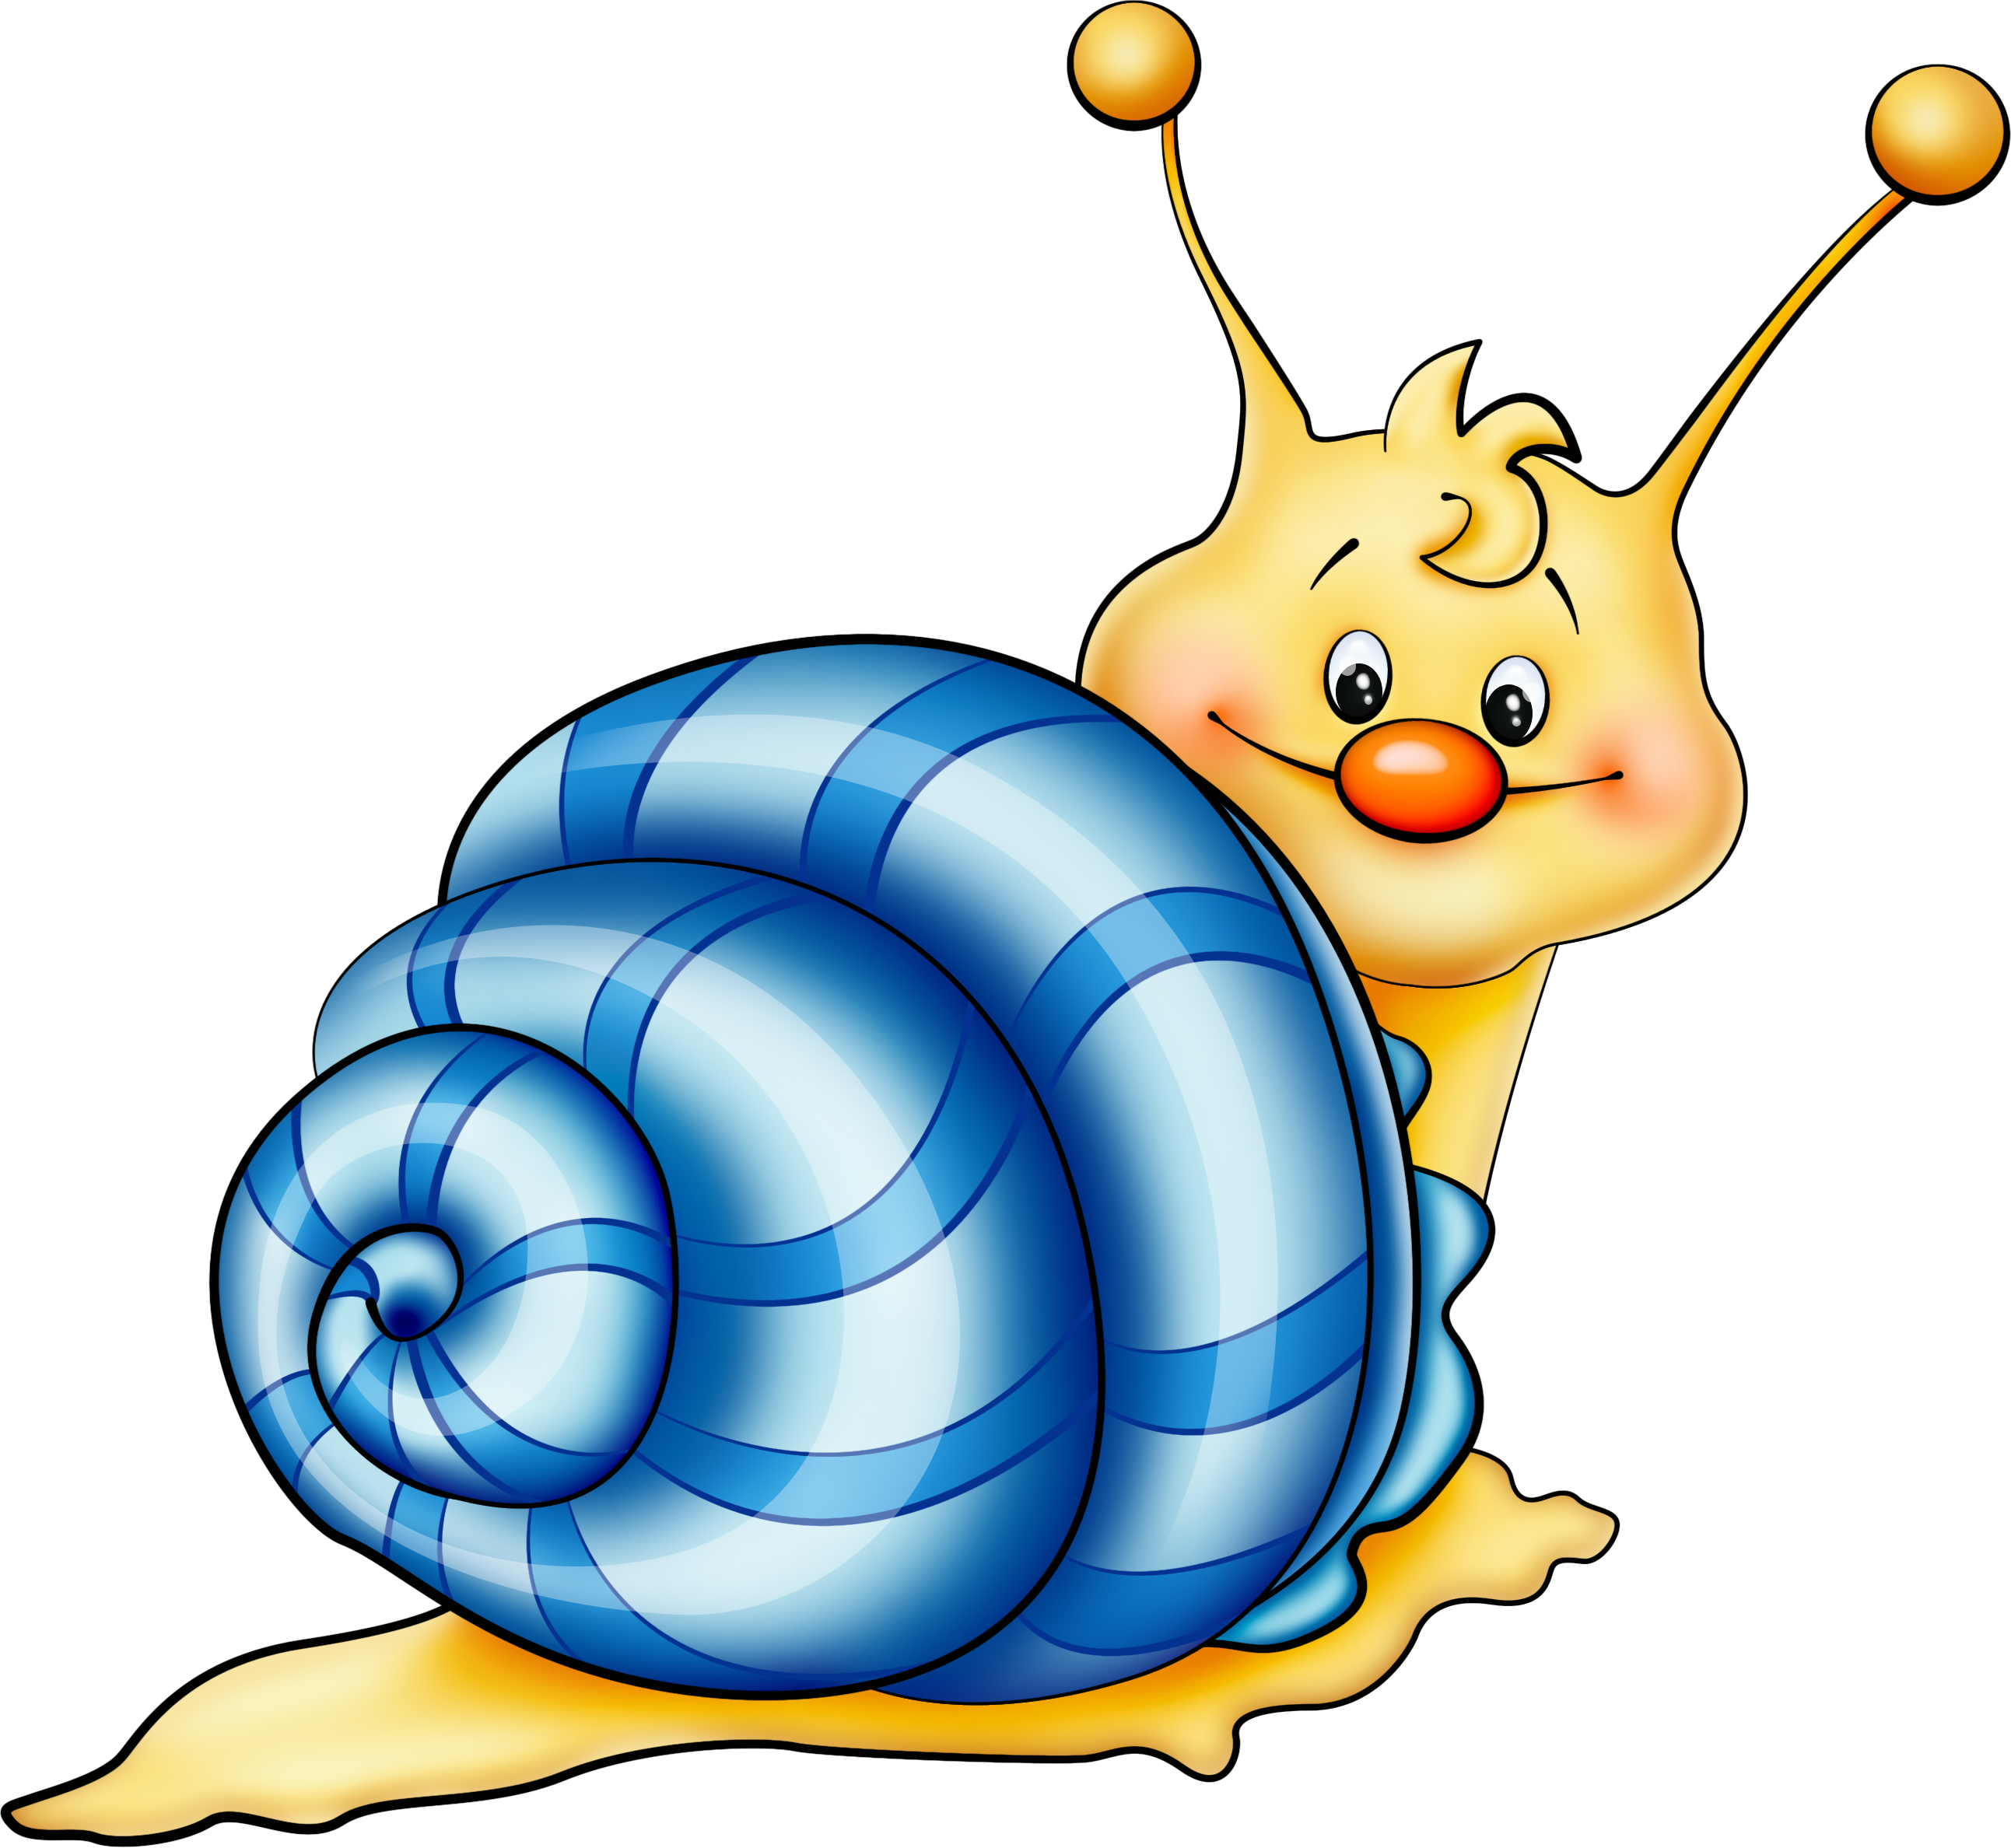 Clipart rock cartoon. Blue snail png picture